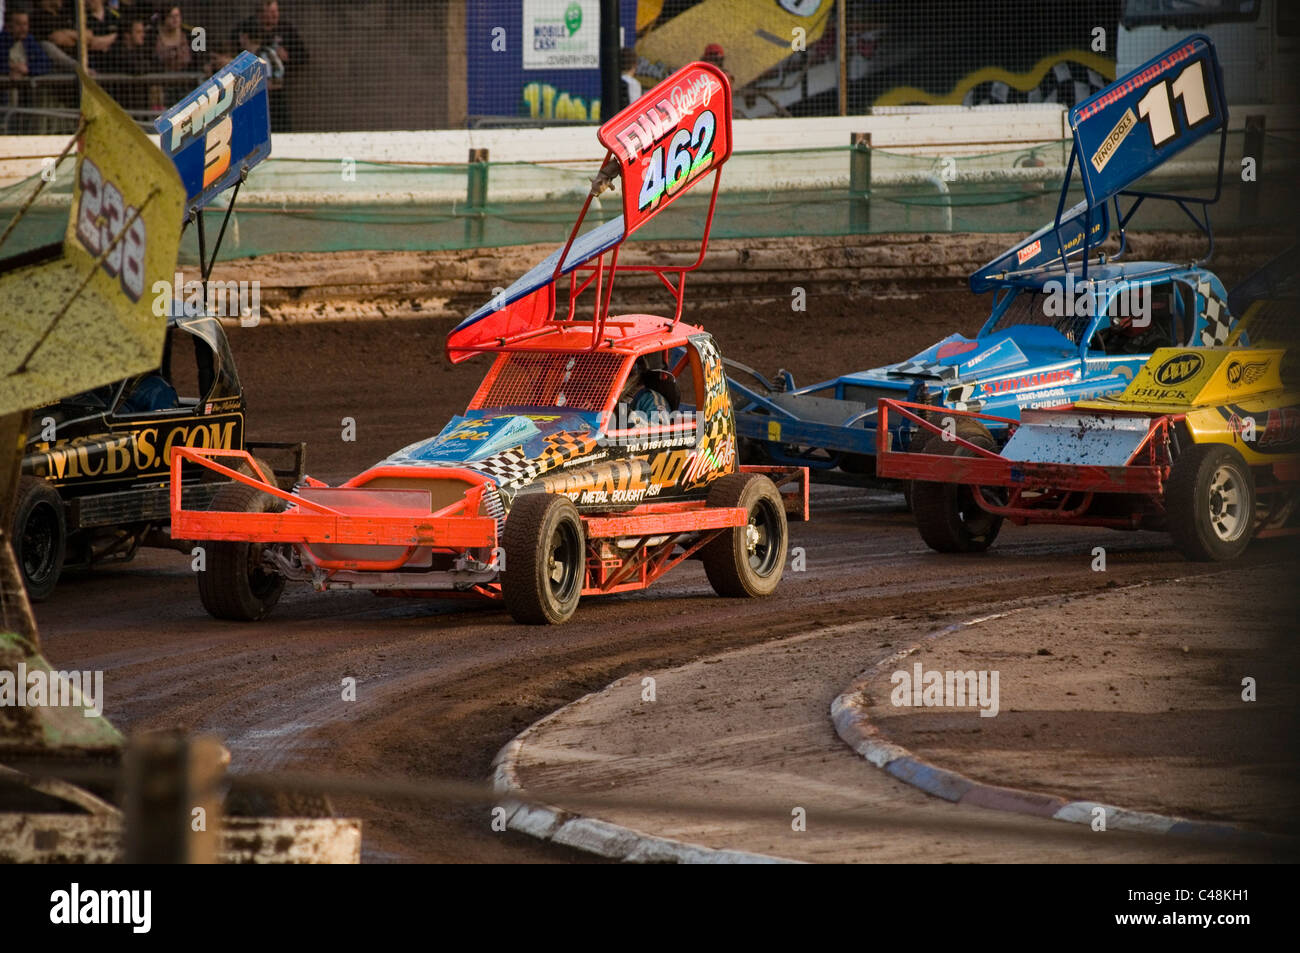 formula 0ne 1 f1 stock car cars stockcars stockcar shale track tracks race racing racers full contact motorsport - Stock Image